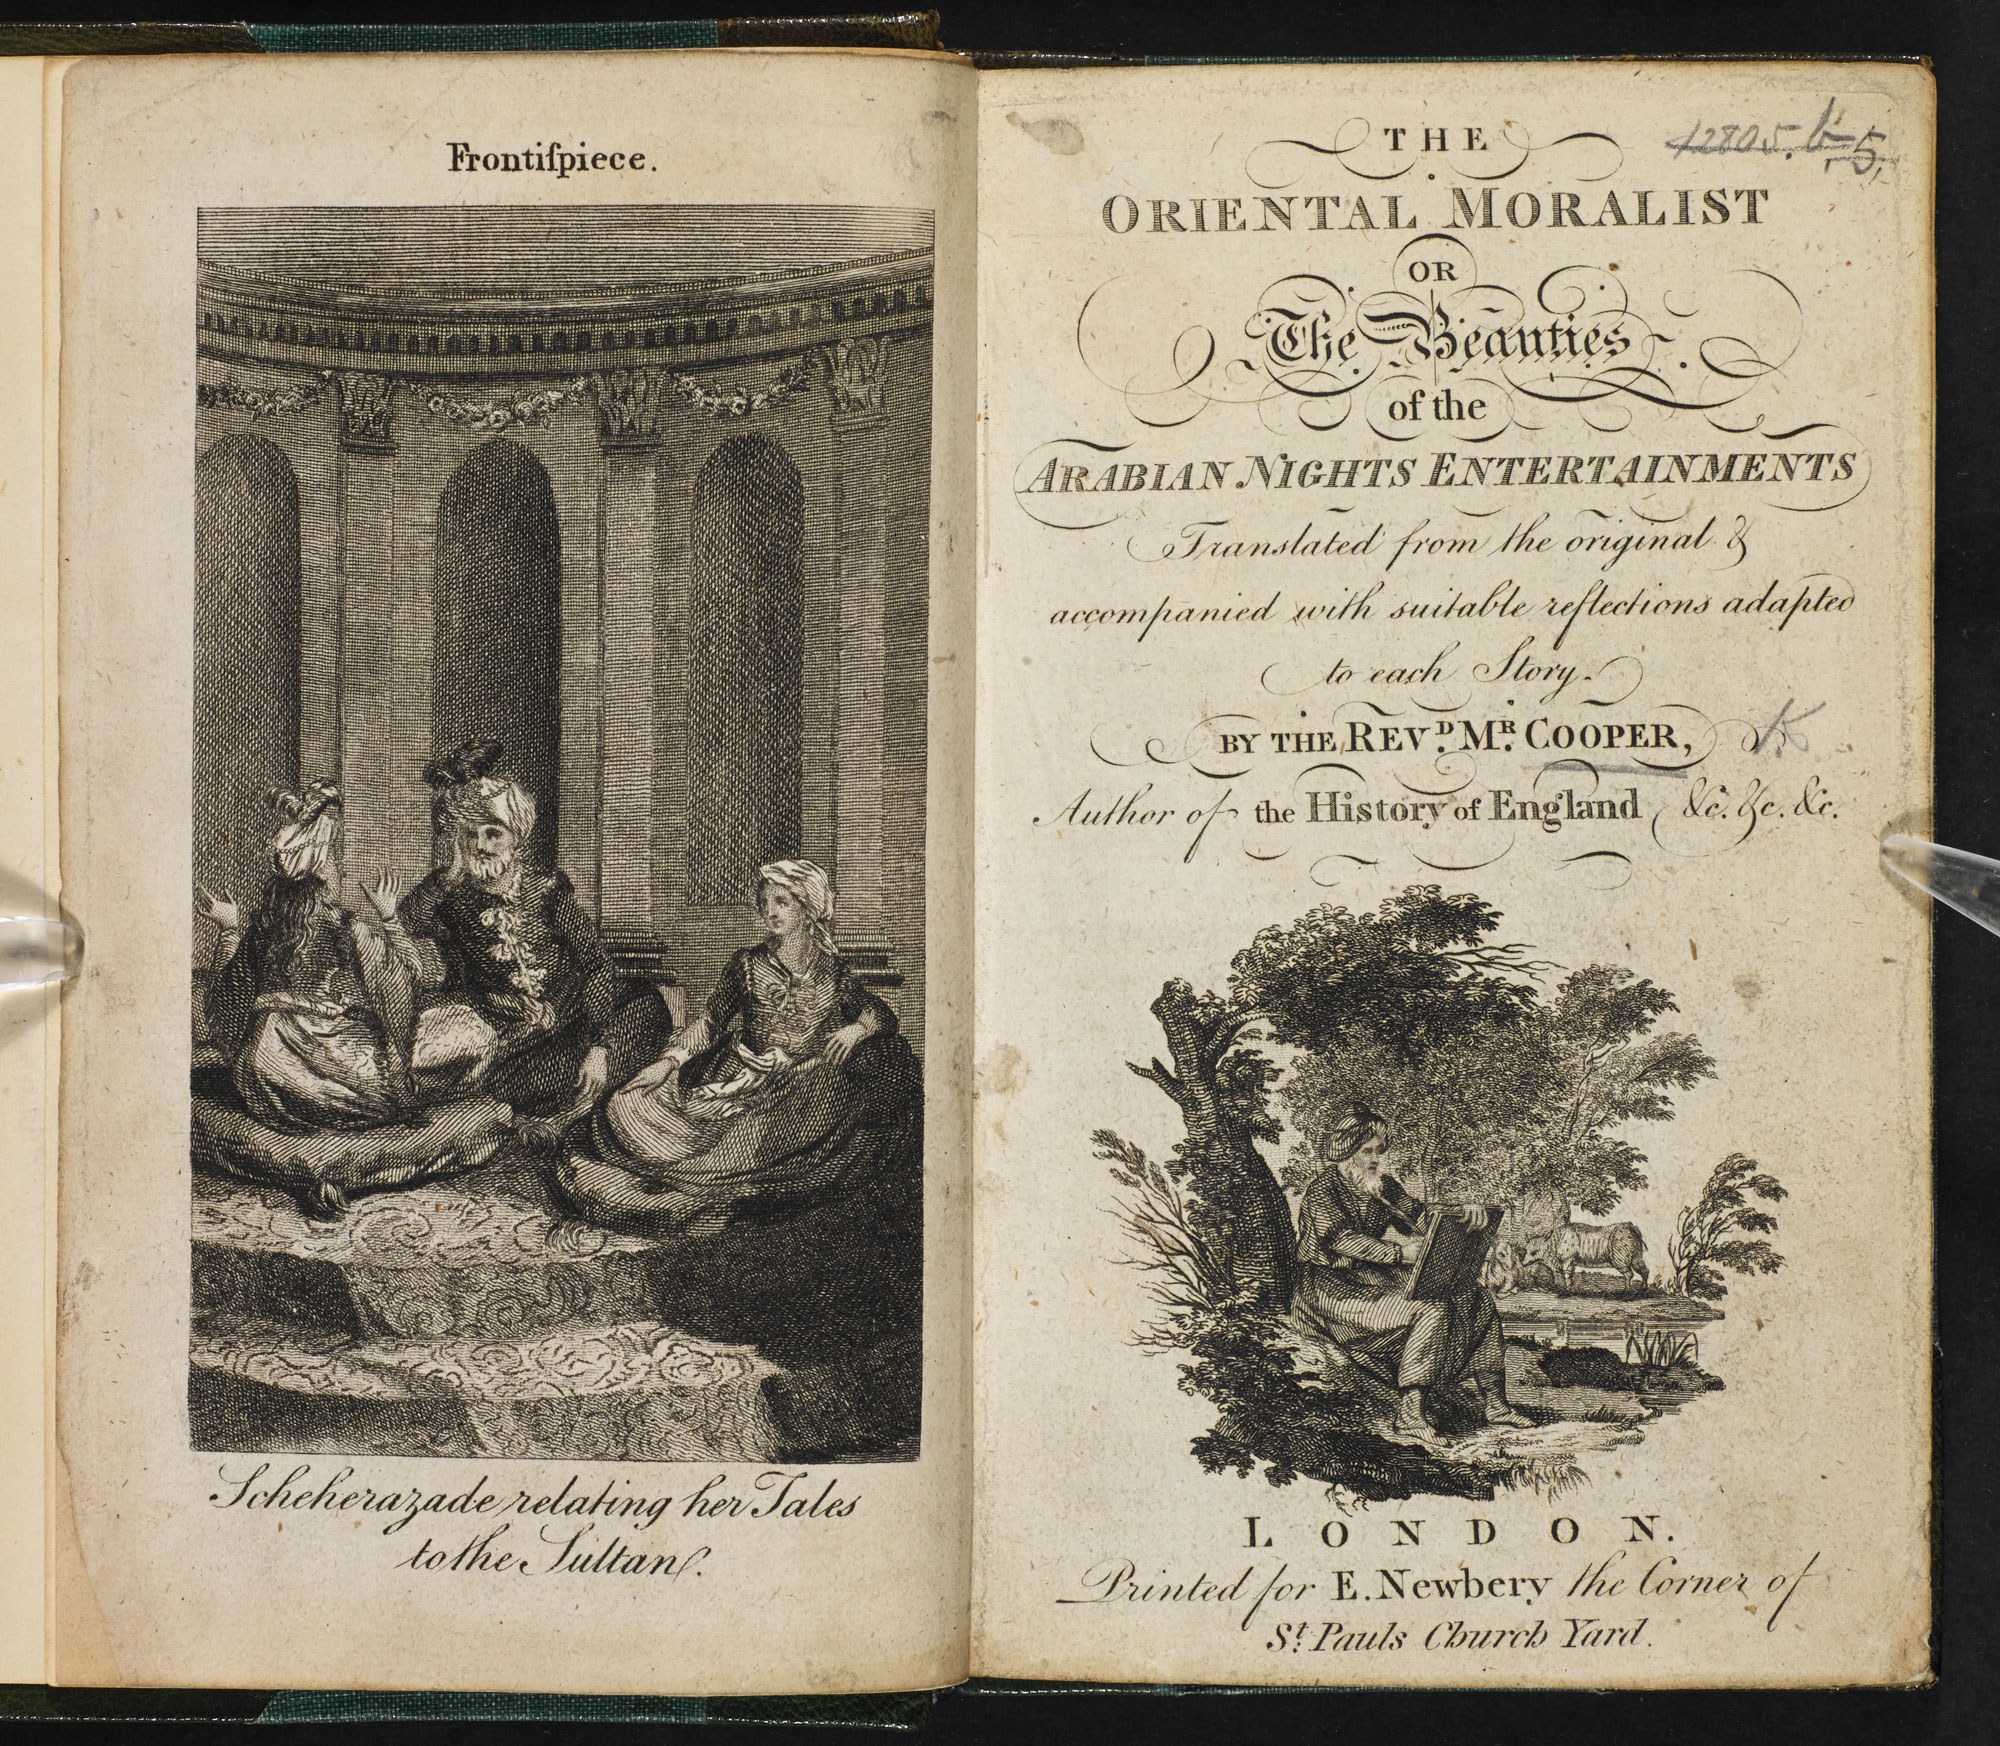 The Oriental Moralist [page: frontispiece and title page]